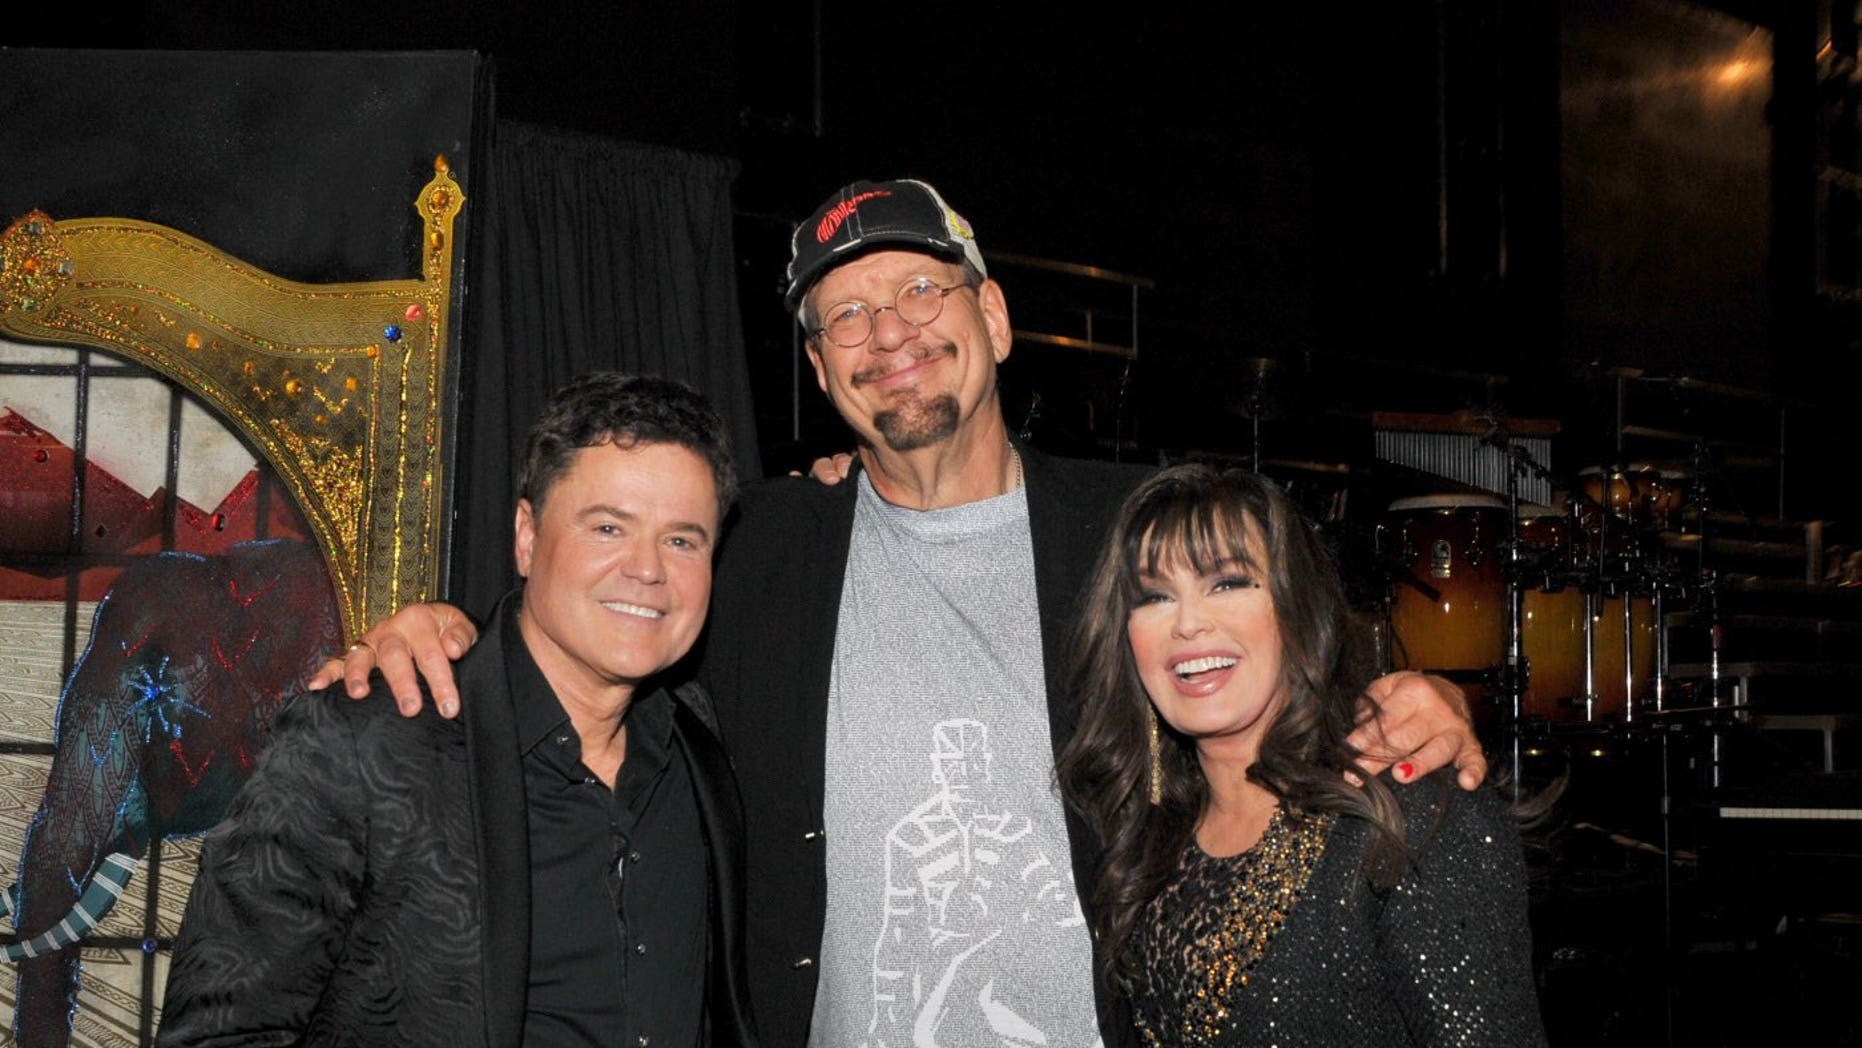 From the left, Donny Osmond, Penn Jillette and Marie Osmond. Jillette said he lost 105 pounds by employing intermittent fasting.